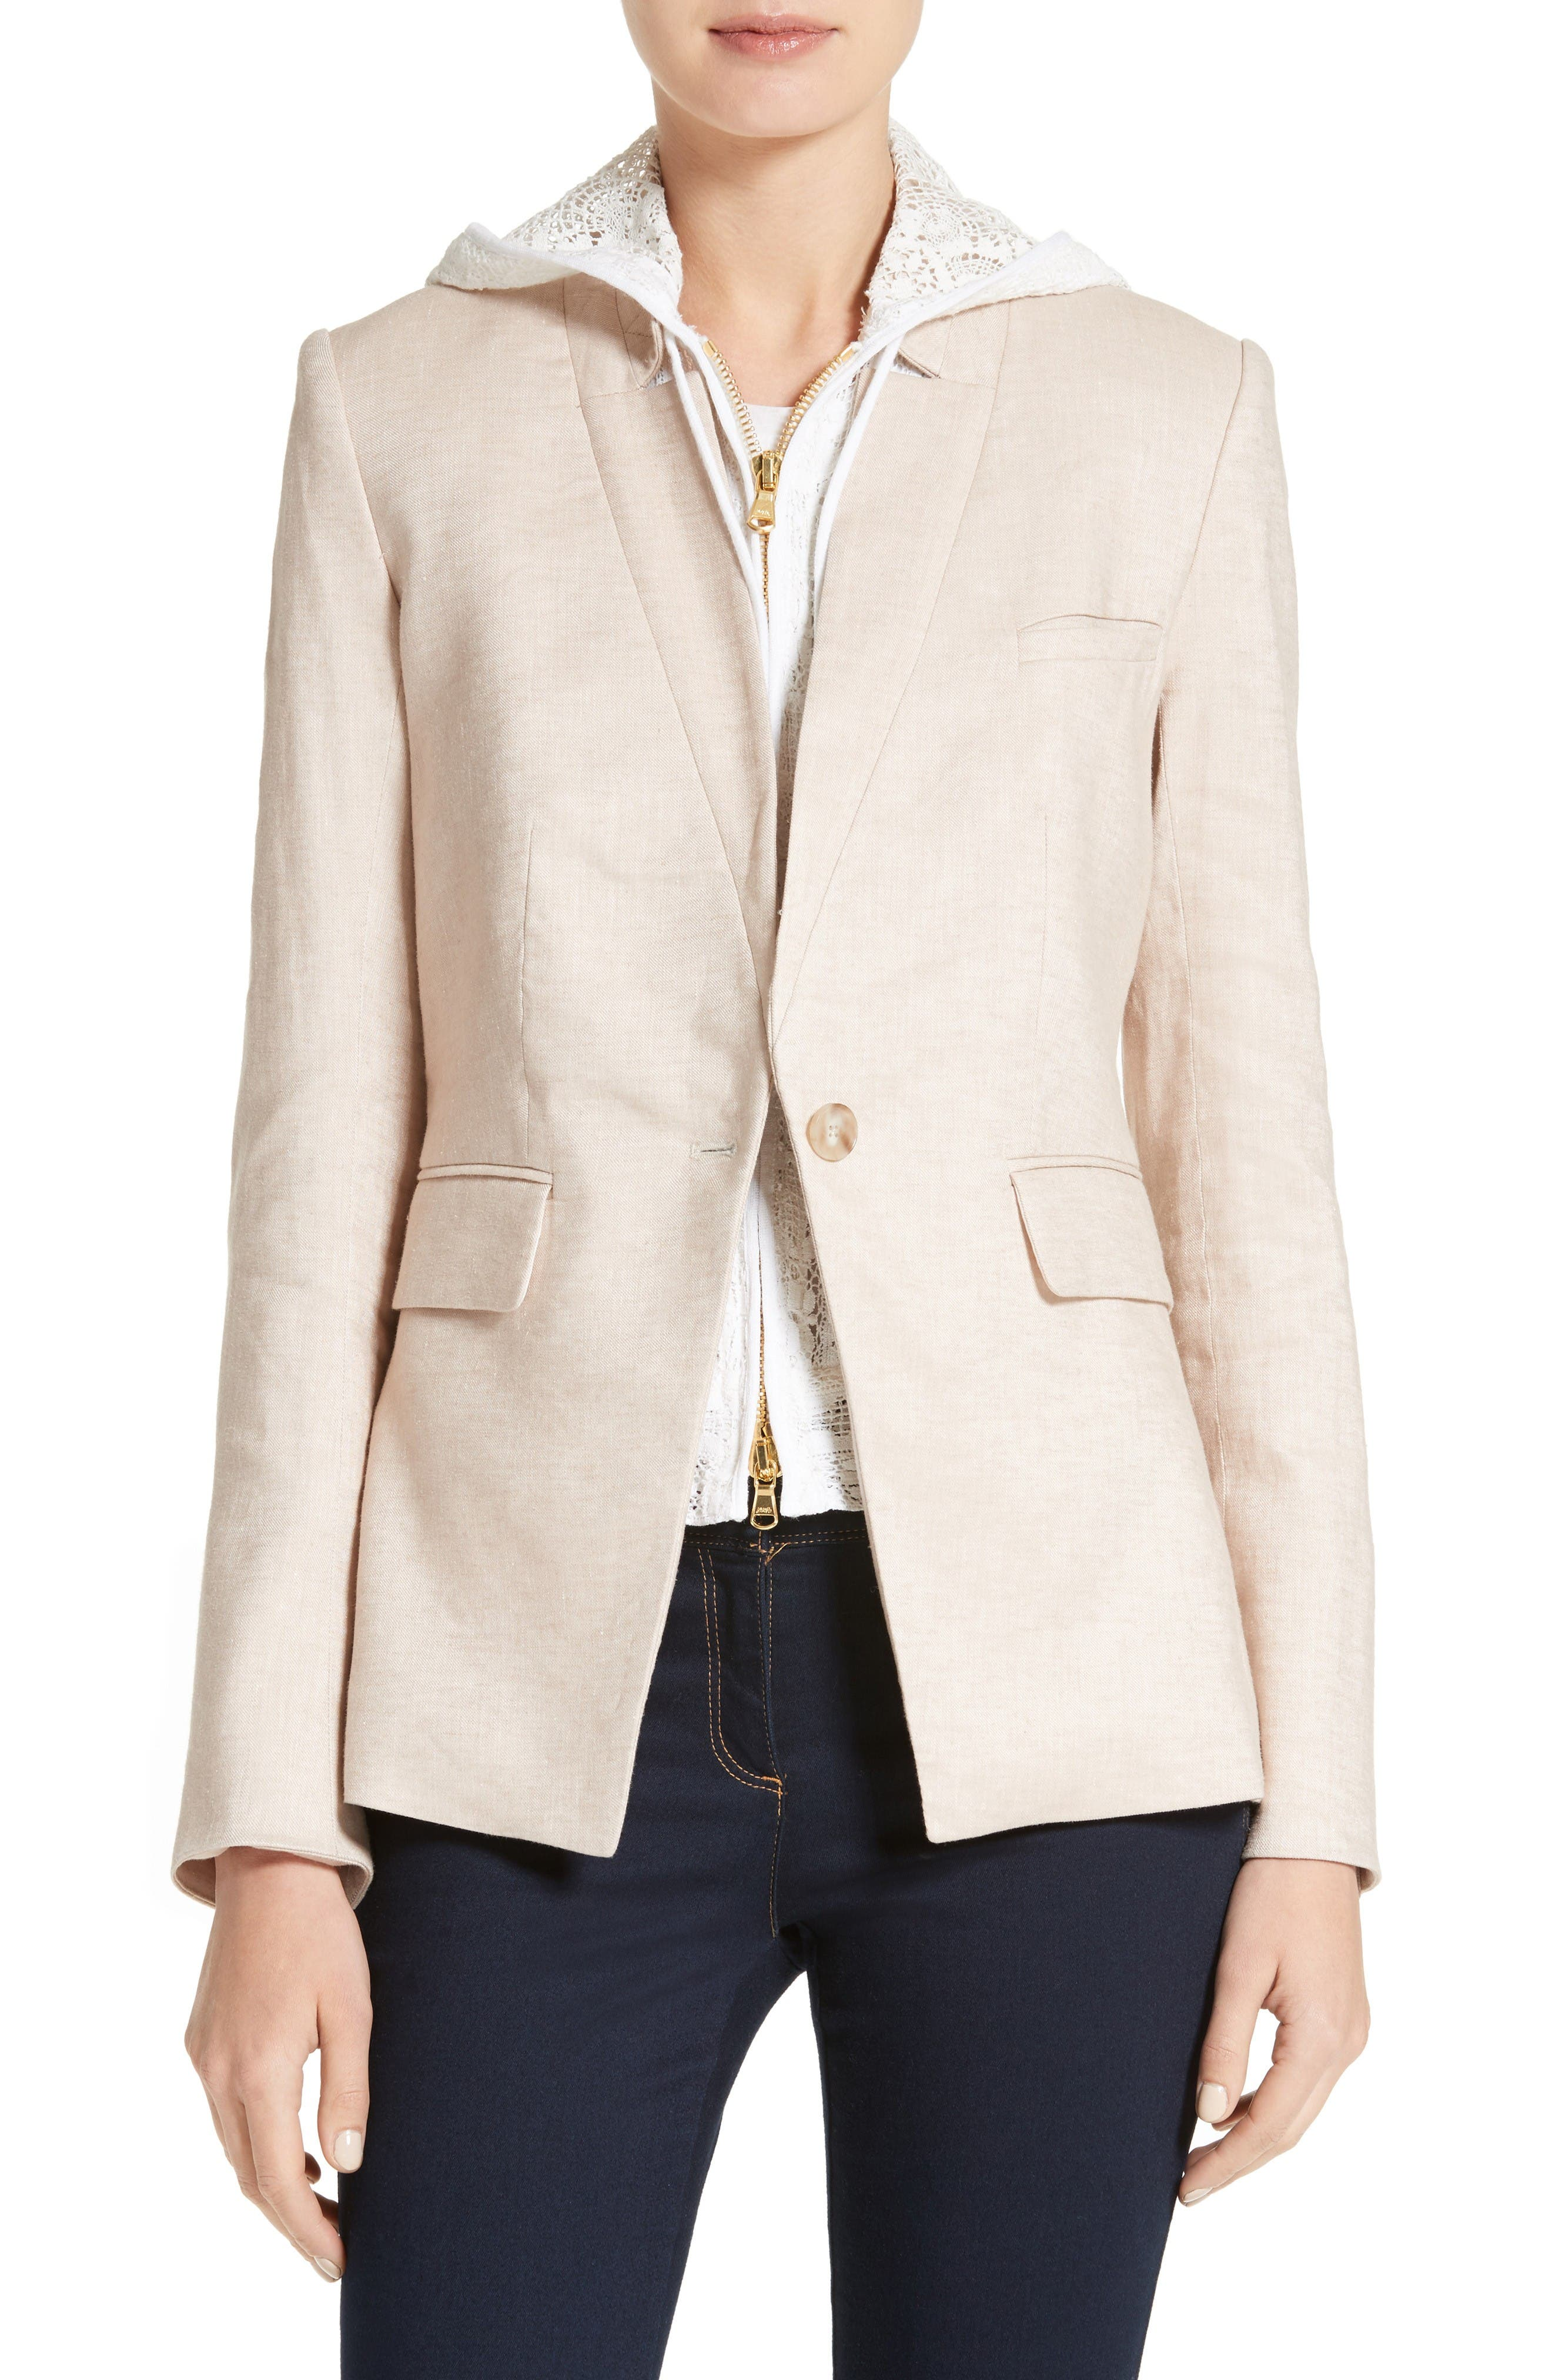 Main Image - Veronica Beard Turn-Up Collar Jacket